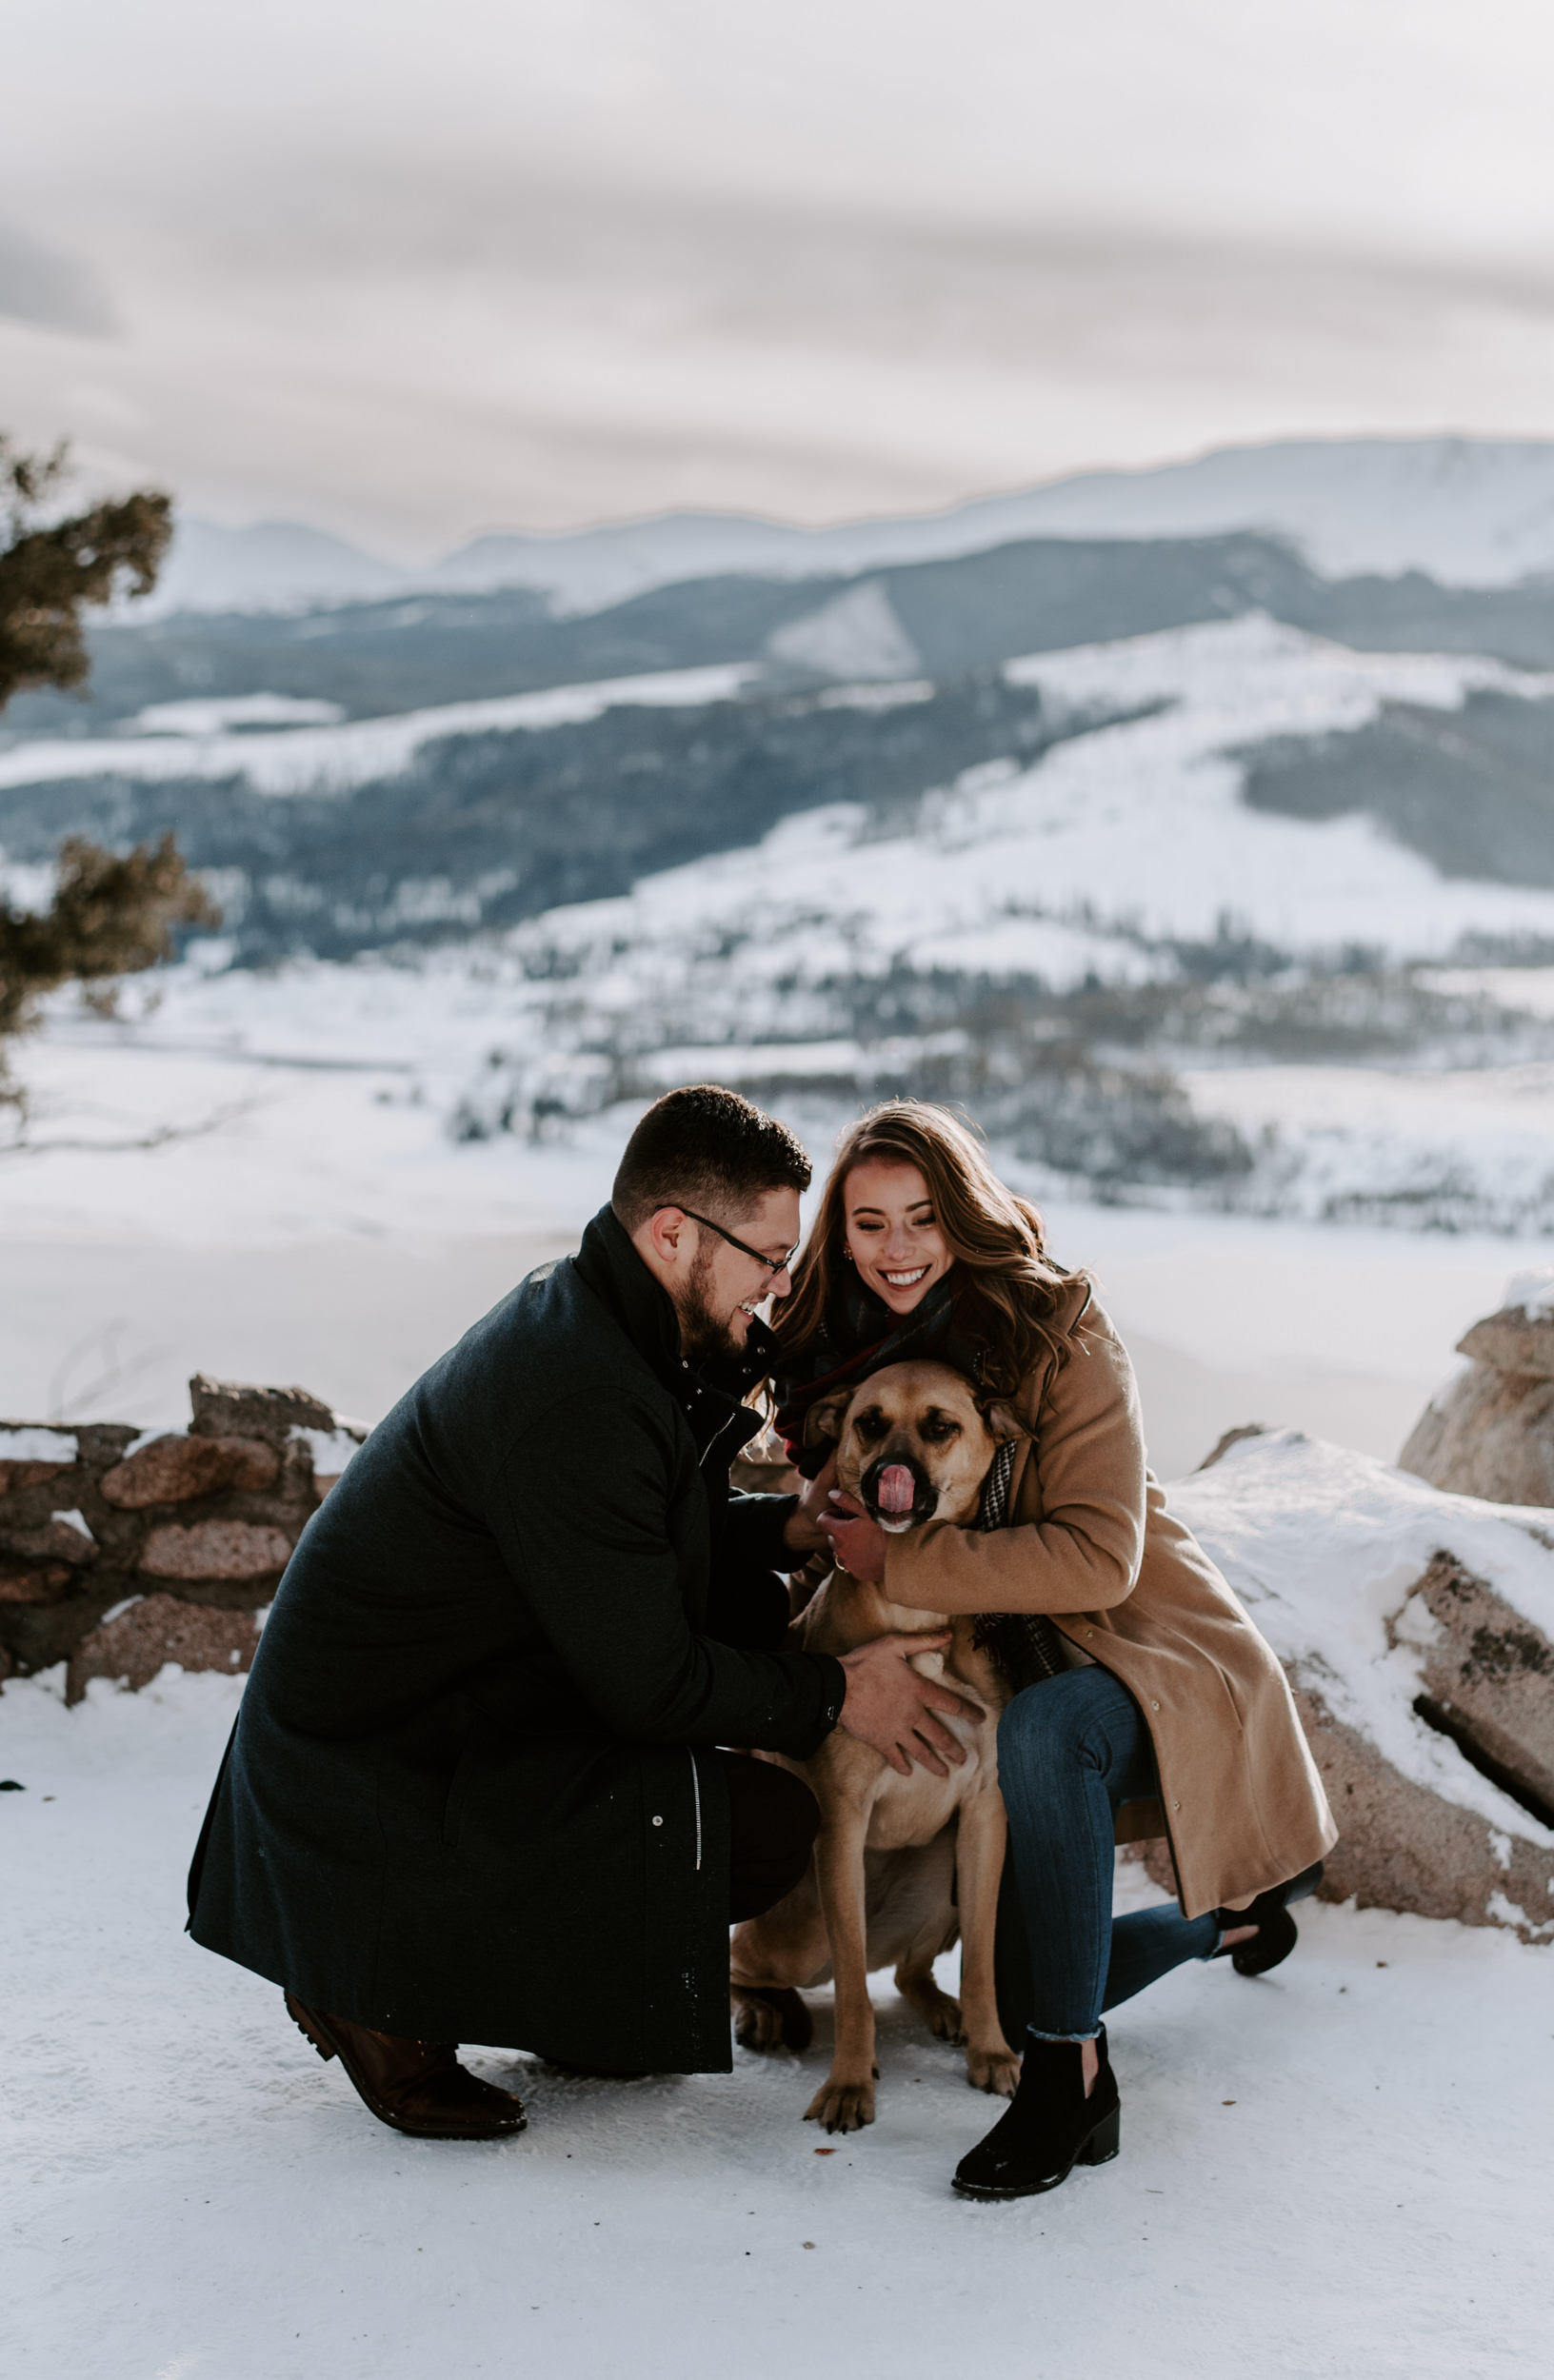 Winter engagement session at Sapphire Point in Breckenridge, Colorado.